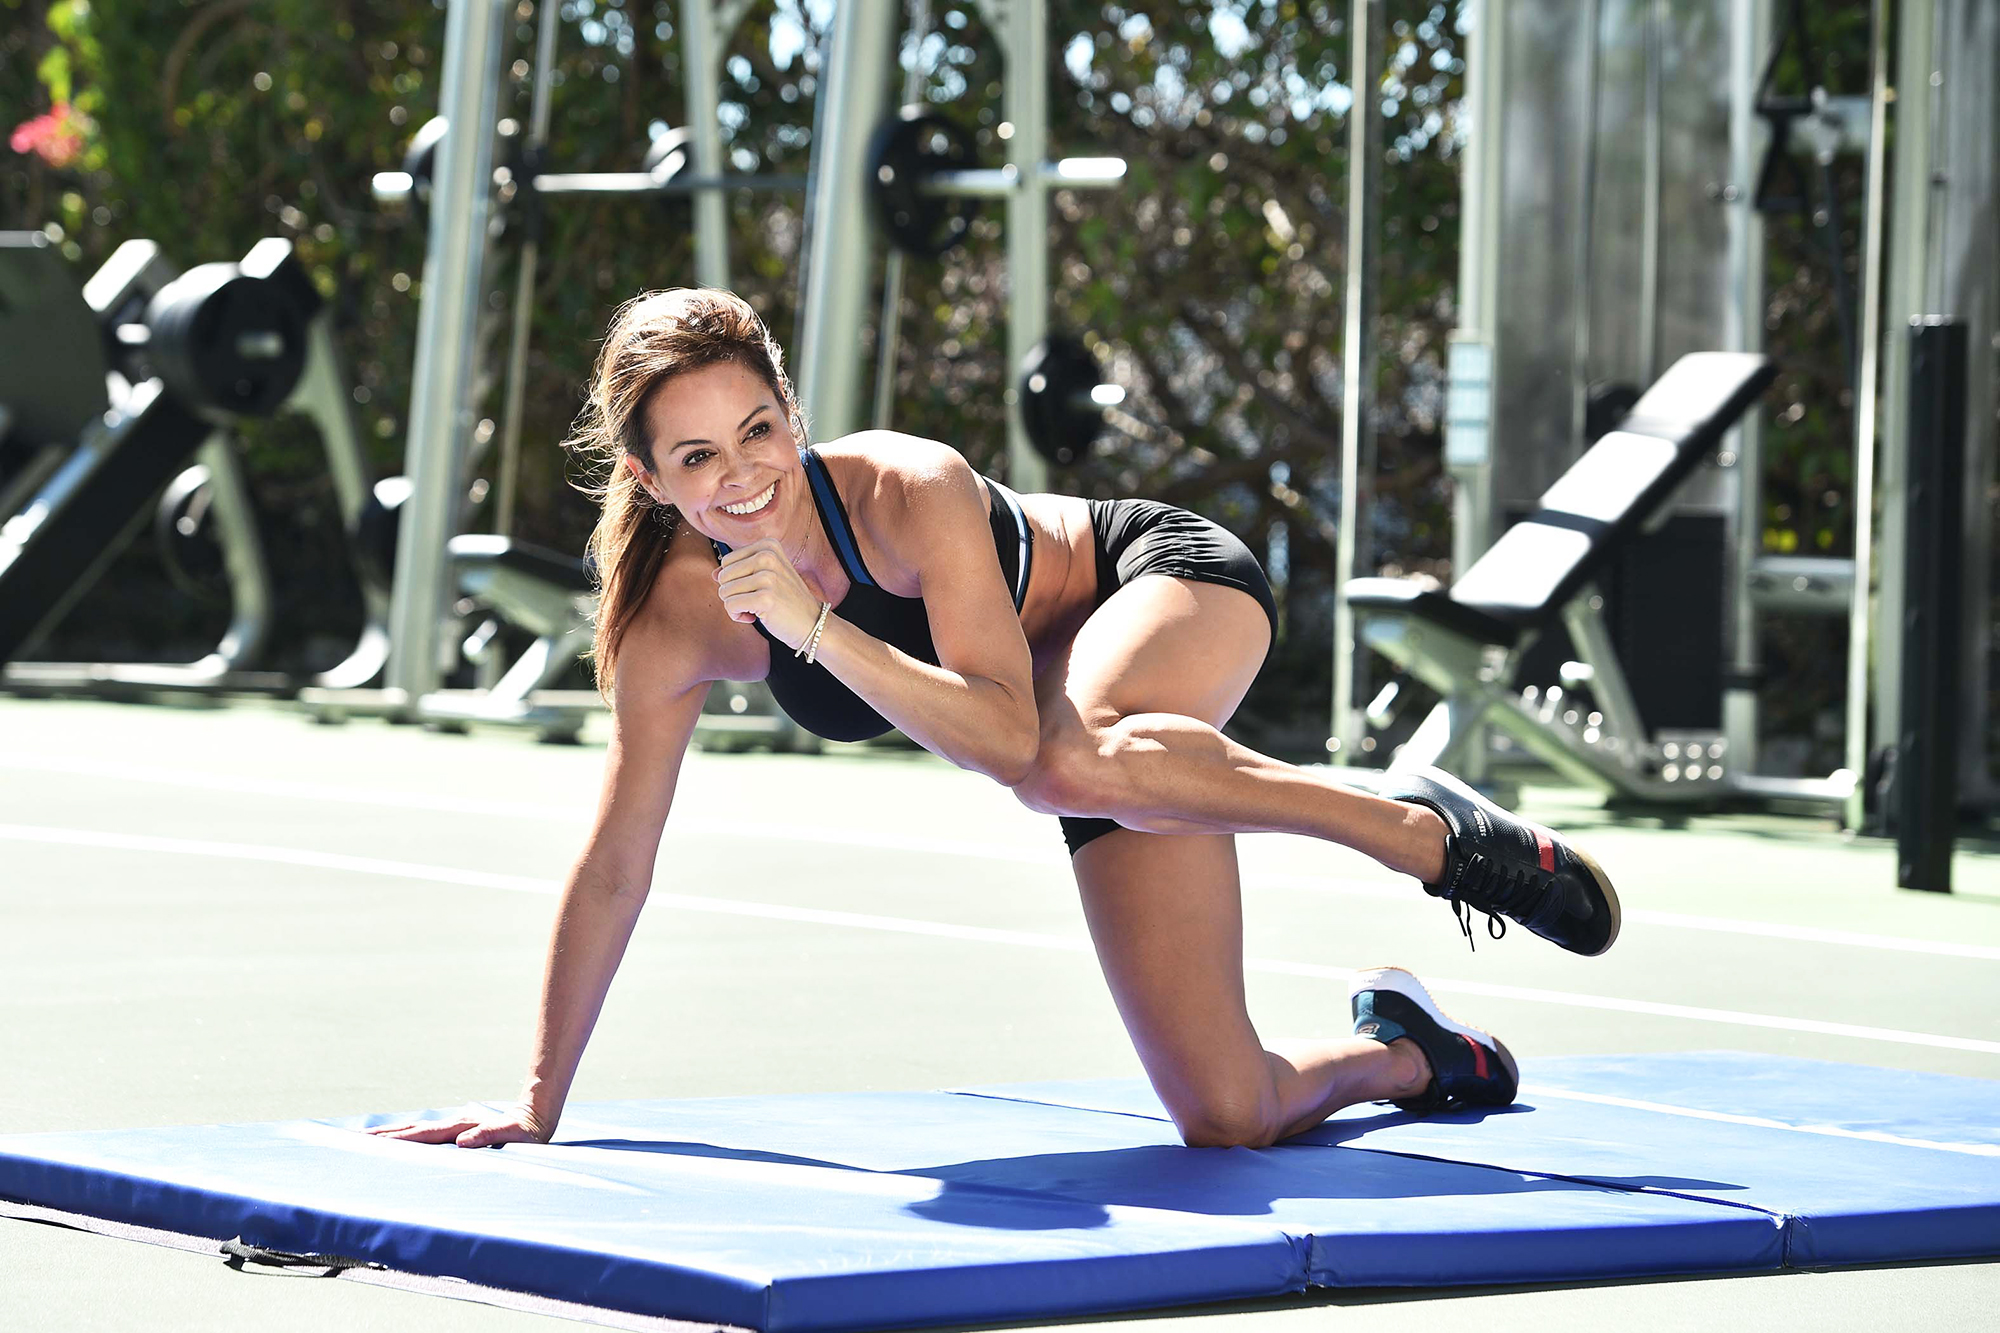 Brooke-Burke's-Go-To-Exercises-to-Do-in-the-Backyard - Start by kneeling on all fours. Stabilize your balance, then bring your left knee and left elbow together at the angle Burke demonstrates.